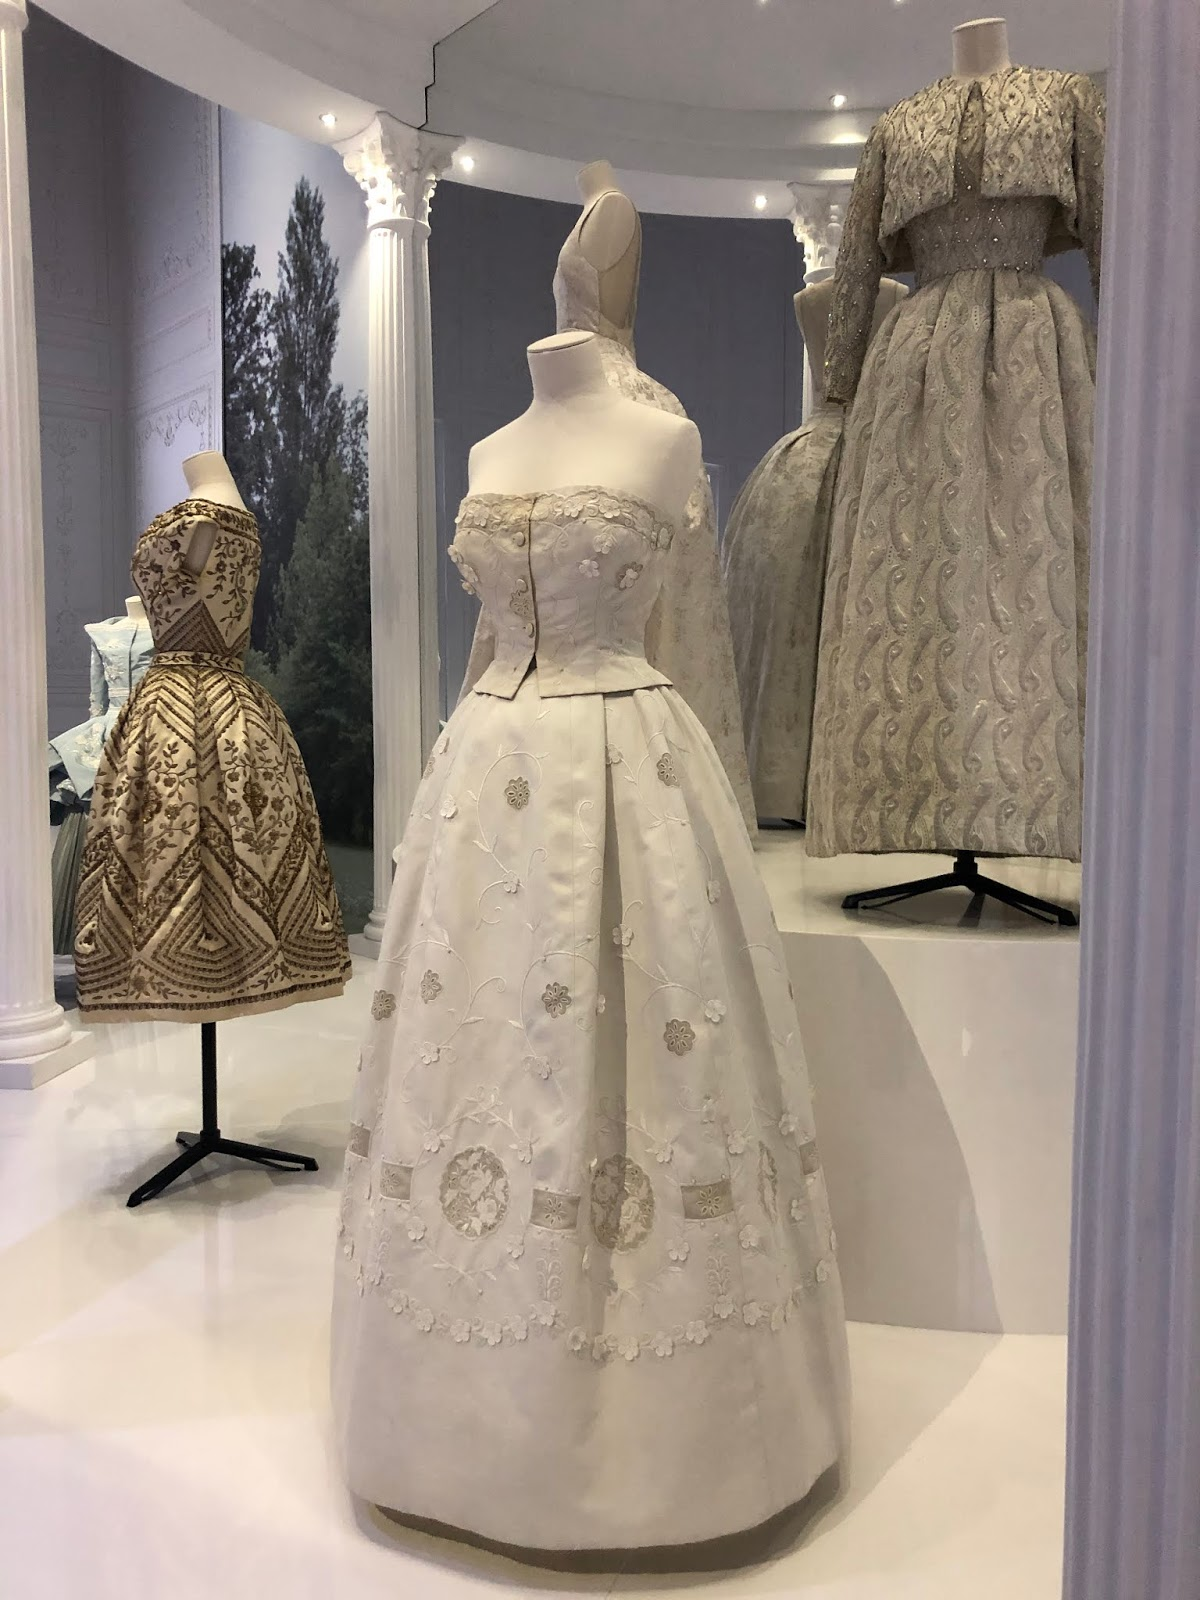 christian dior exhibition v and a embroidered suit